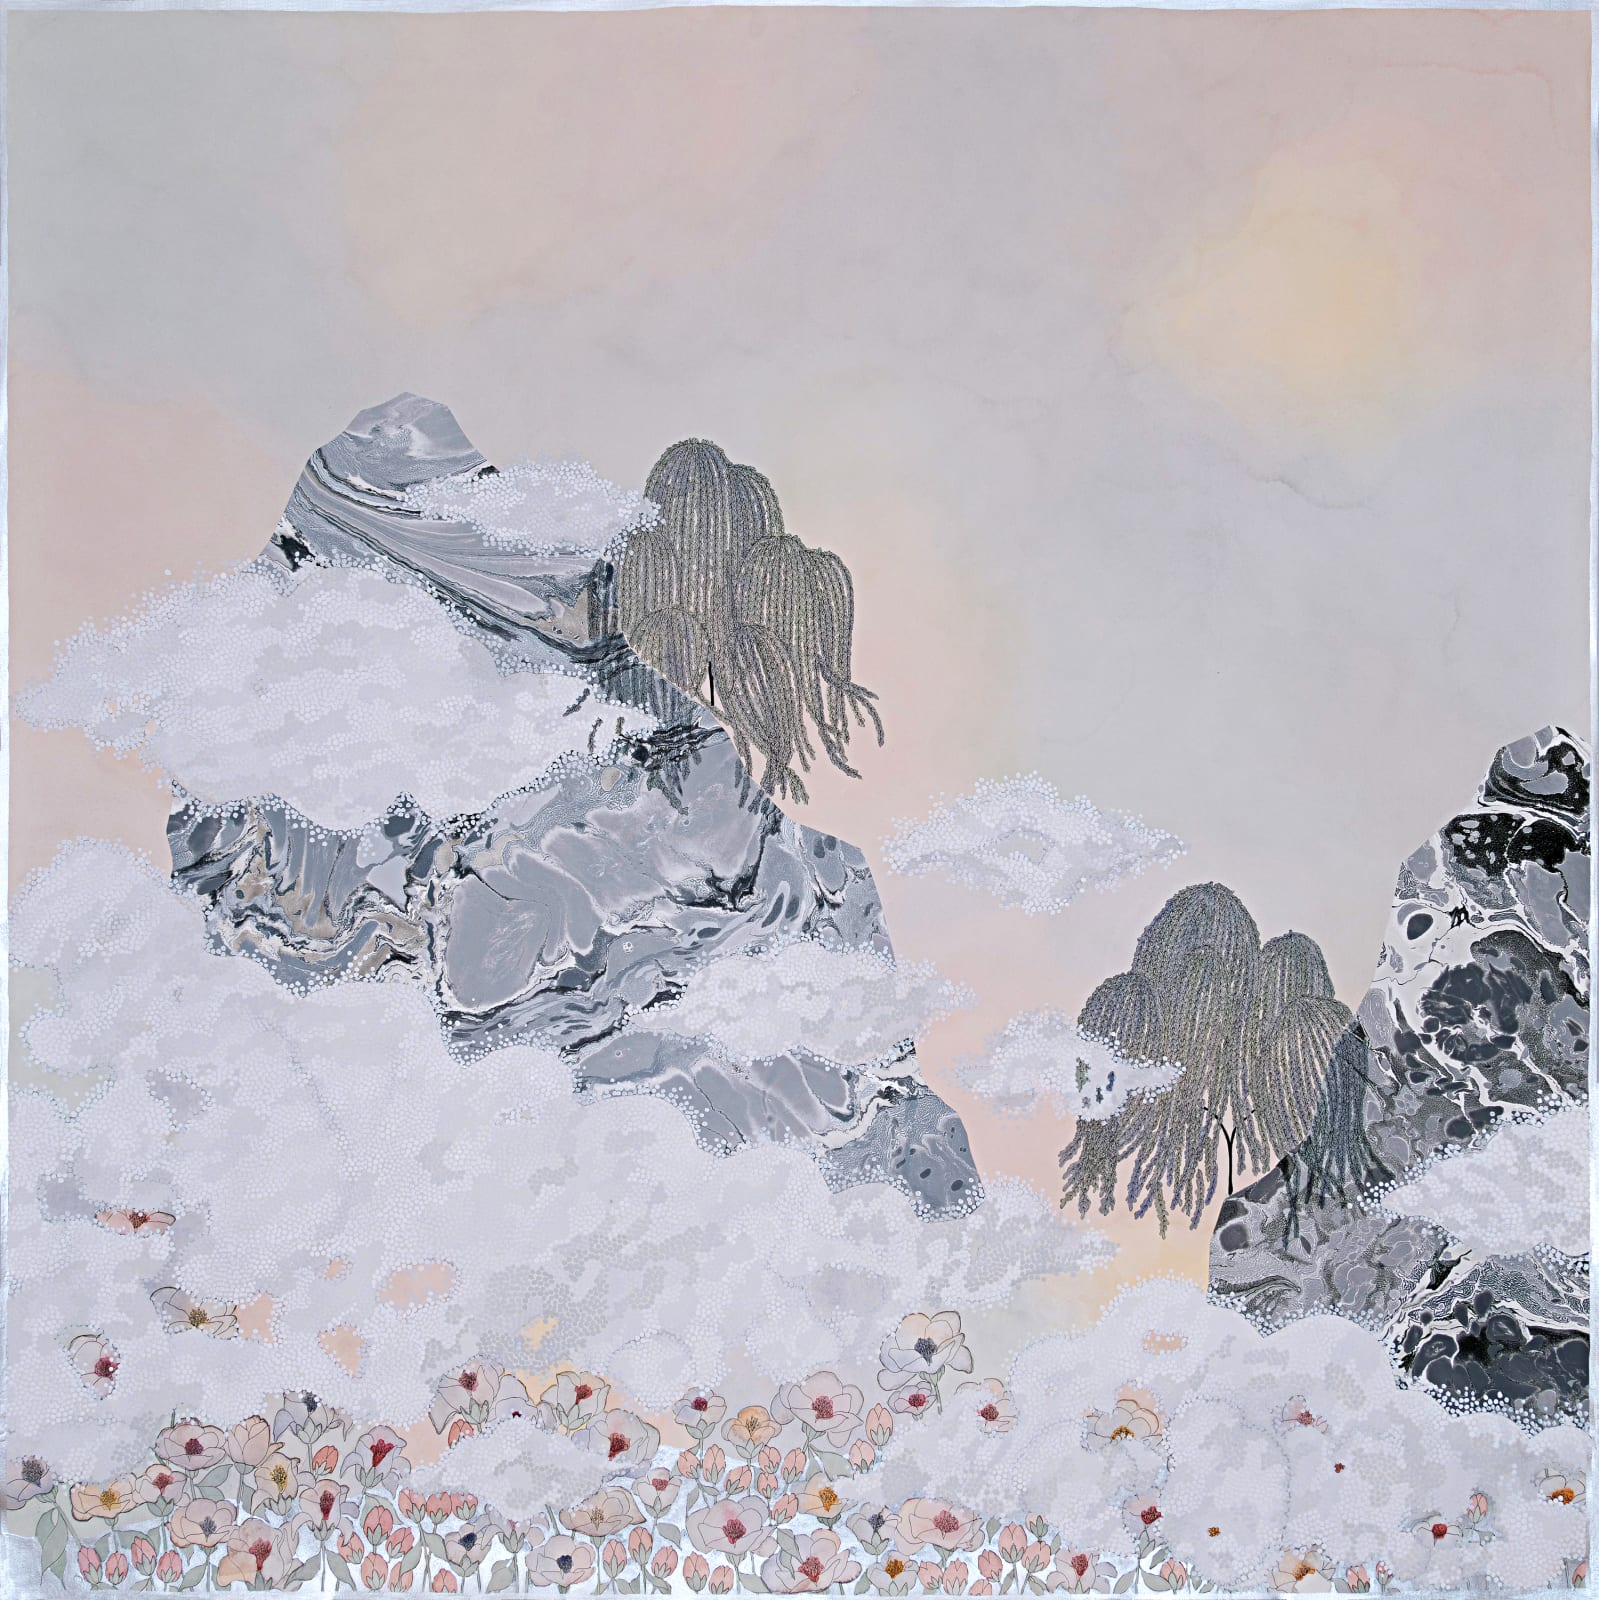 Crystal Liu, the fog, 'they escaped me', 2019